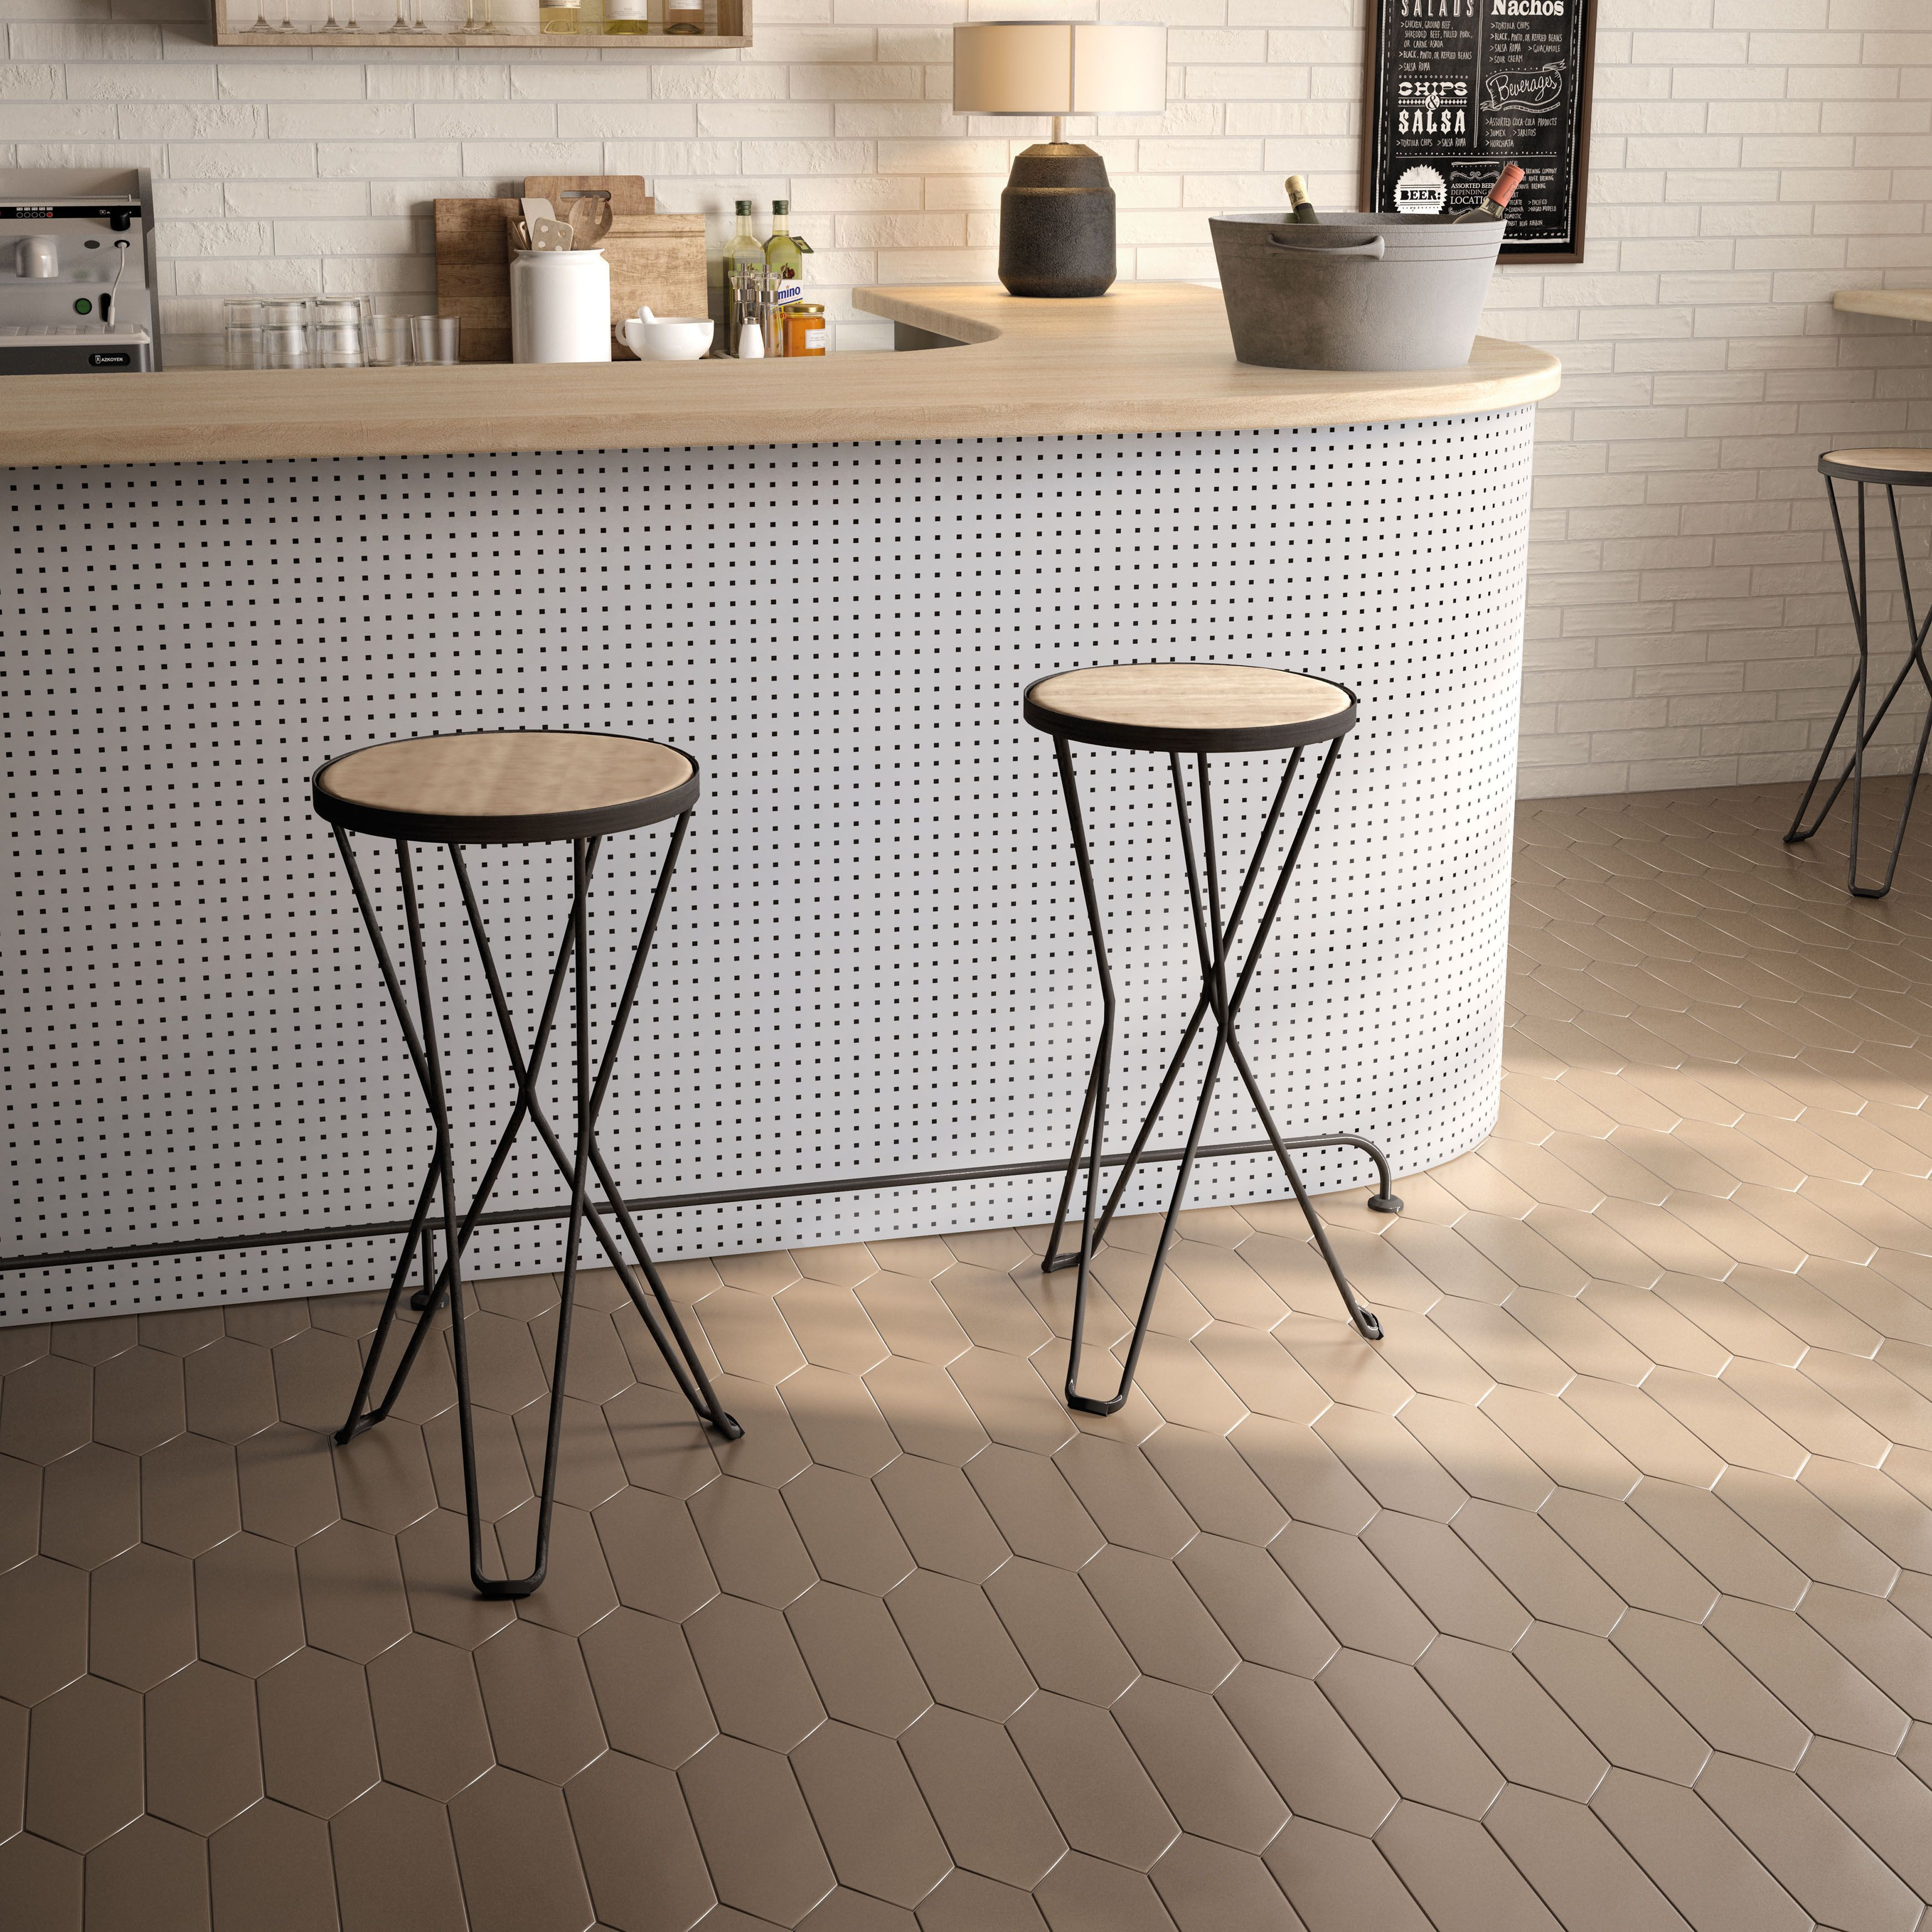 SomerTile 4x11.75-inch Cometa Taupe Porcelain Floor and Wall Tile ...